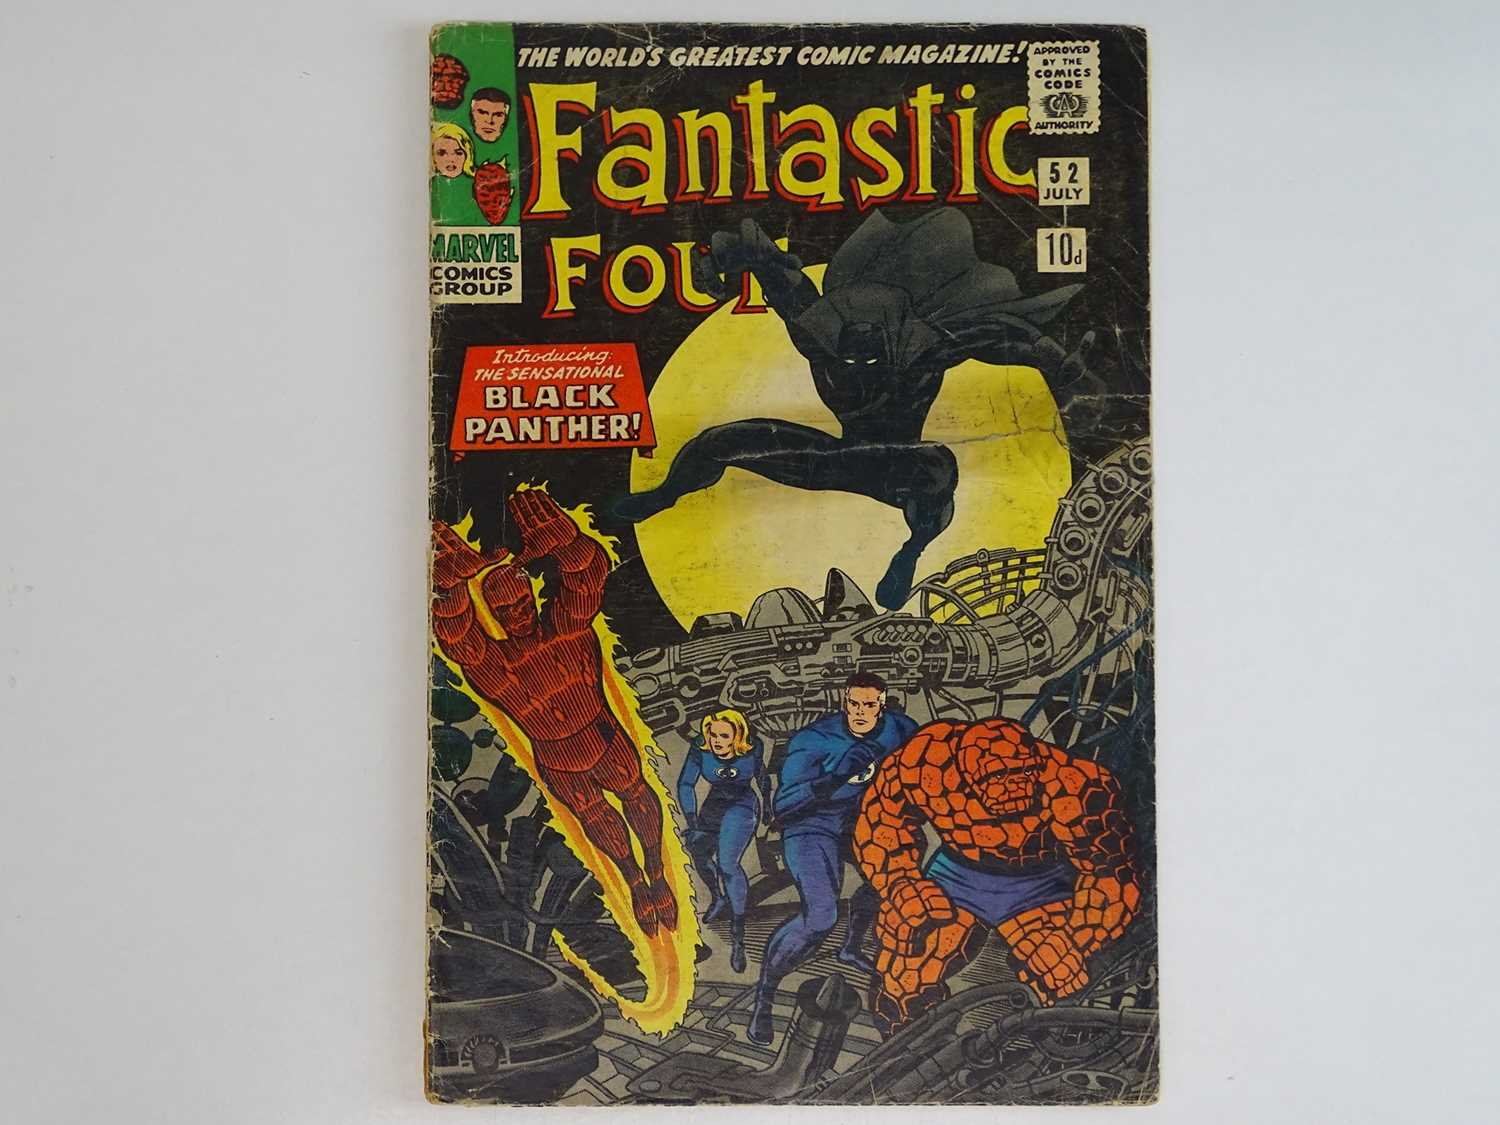 FANTASTIC FOUR #52 (1966 - MARVEL - UK Price Variant) - First appearance of Black Panther (one of